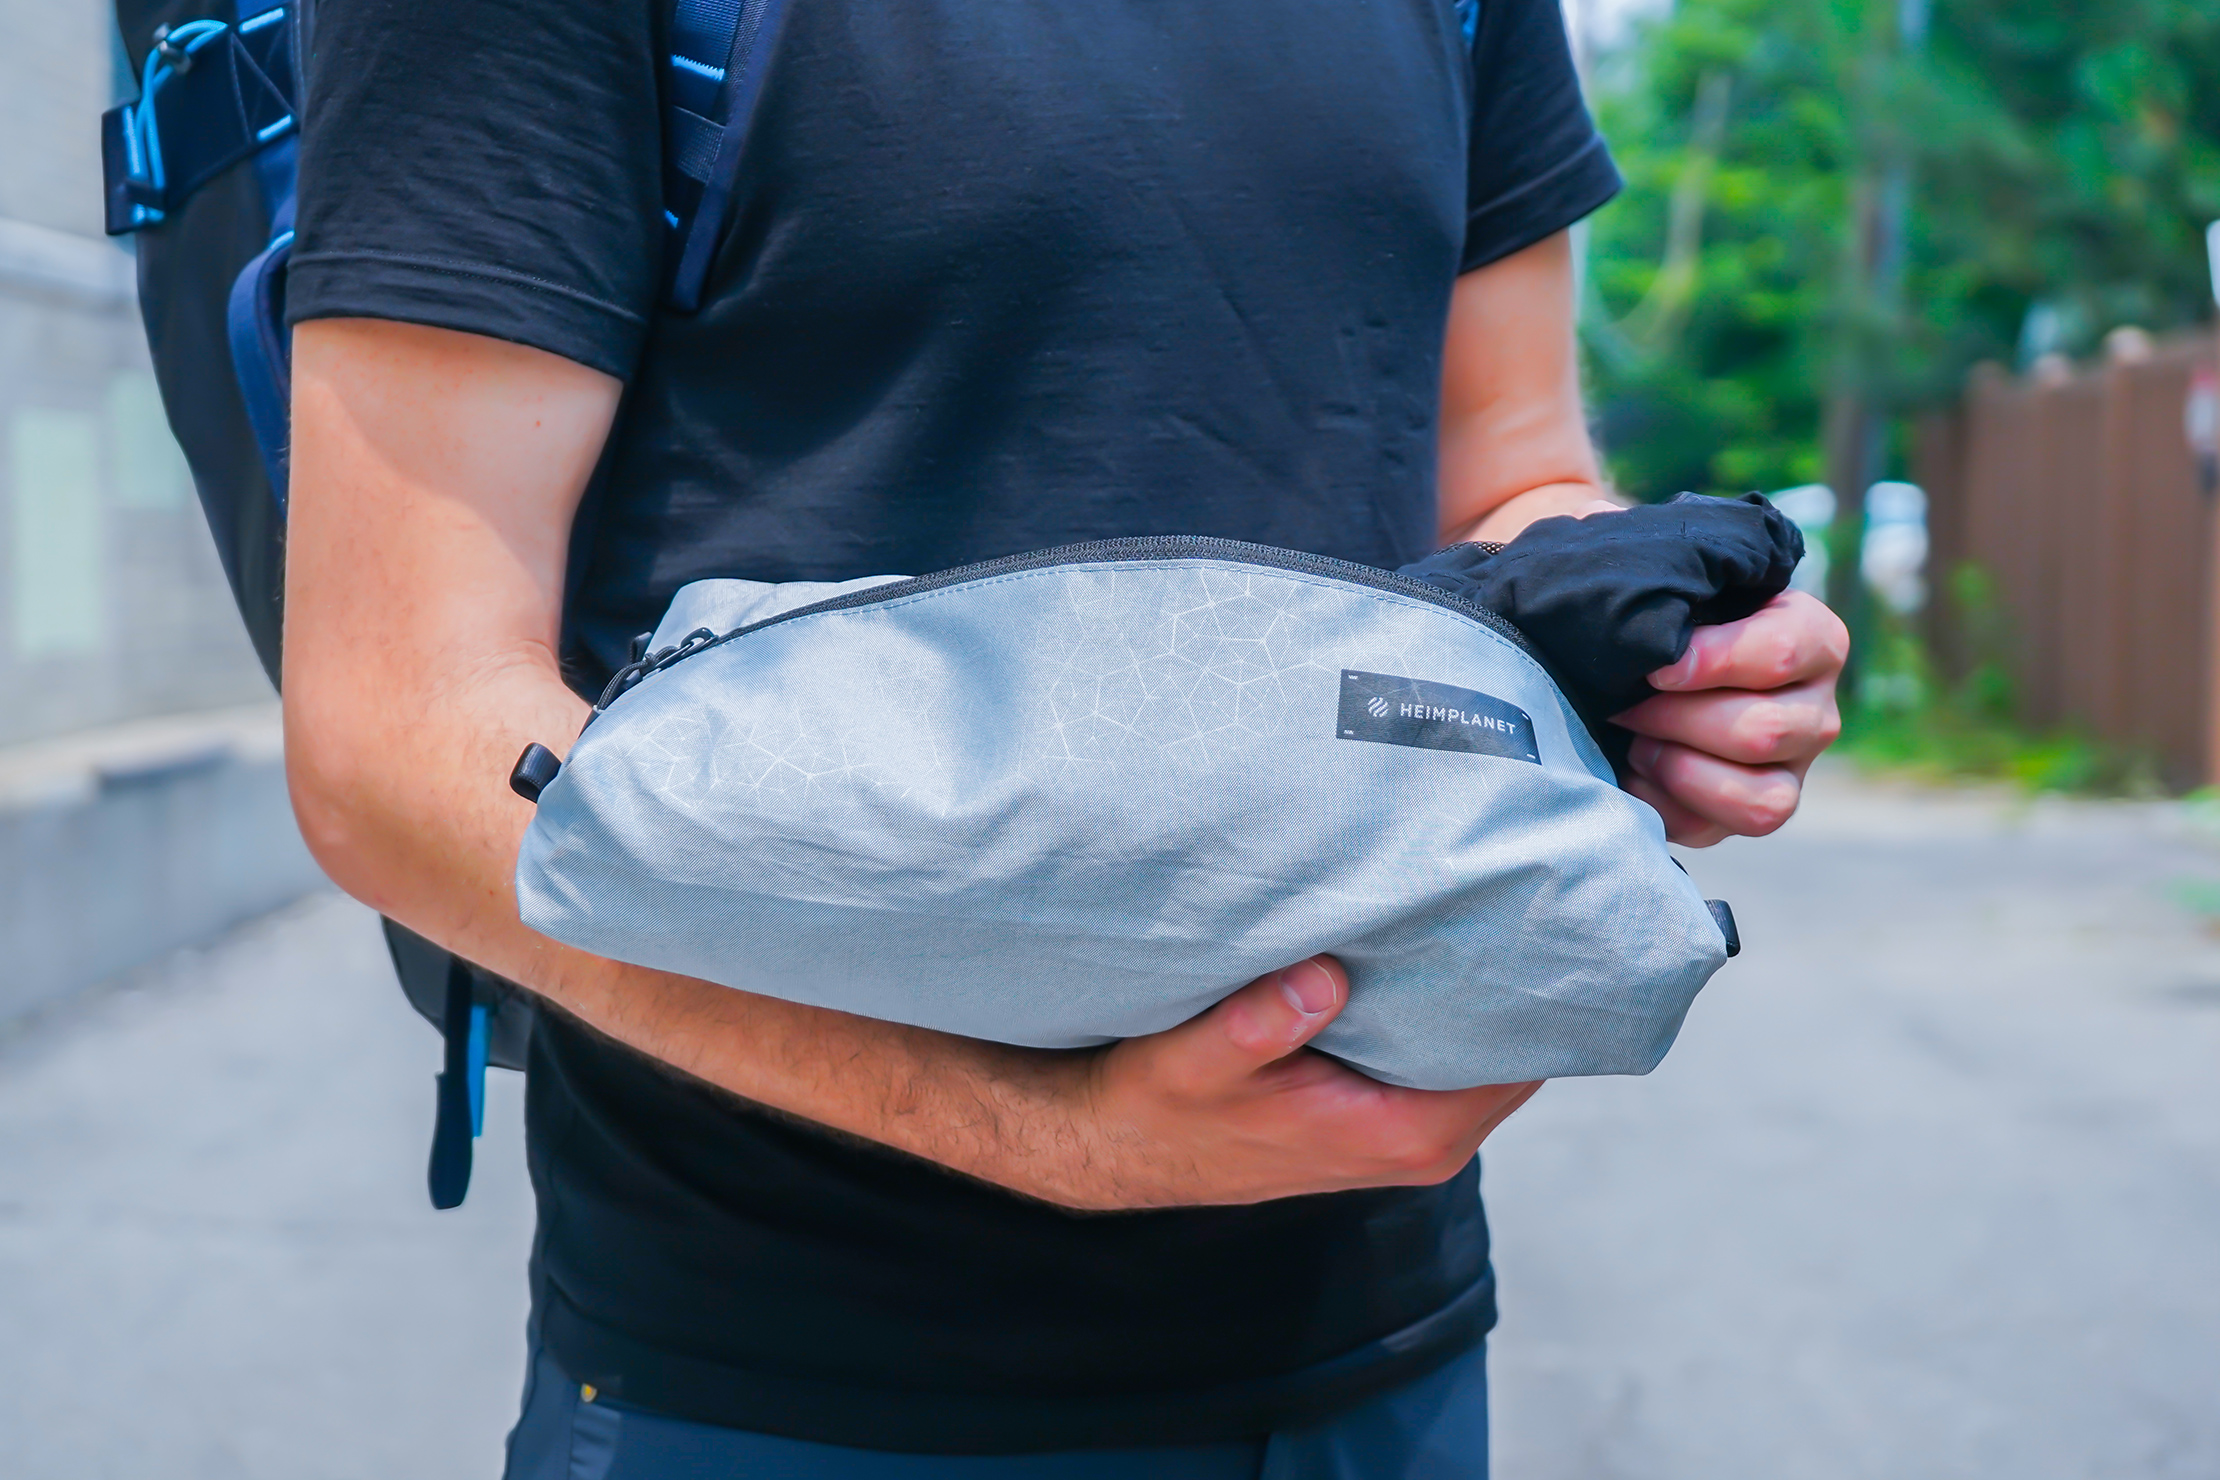 Heimplanet Packing Cubes Usage 3